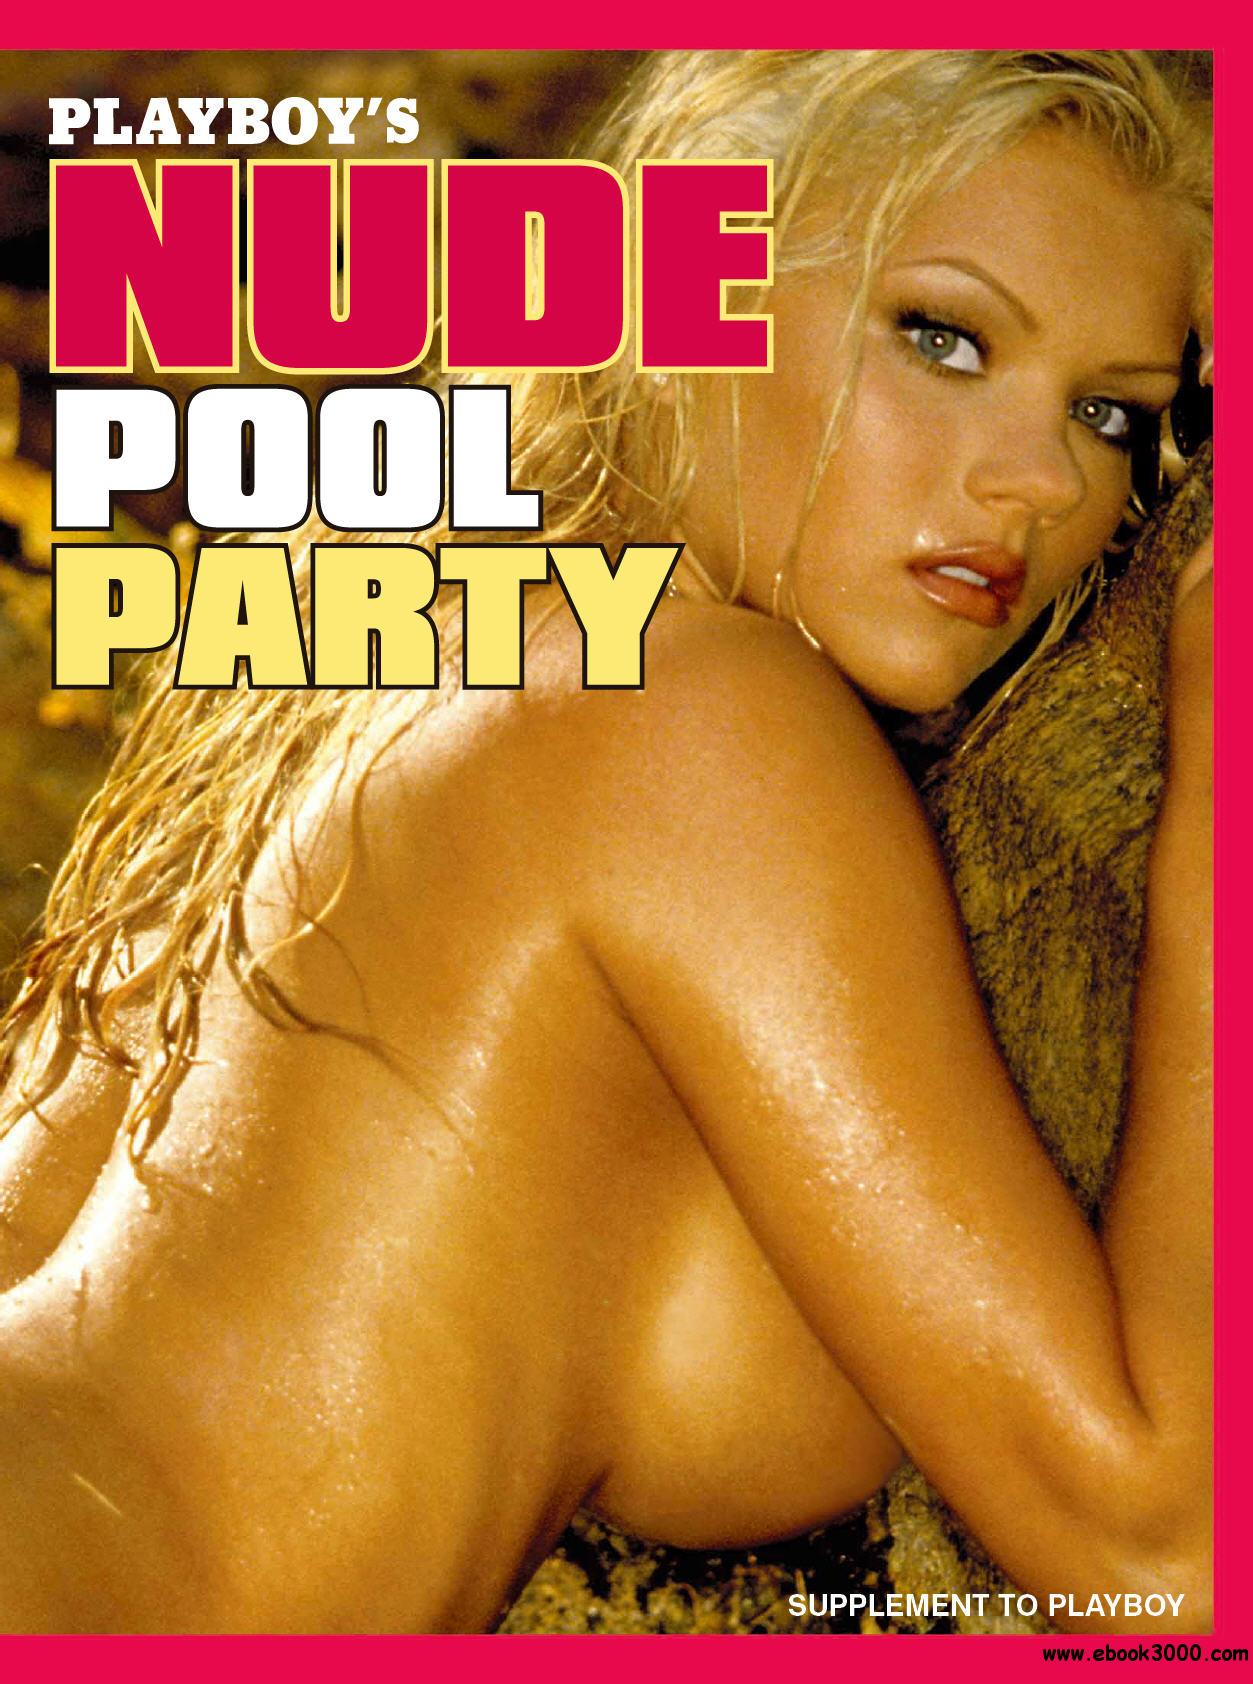 Playboy's Nude Pool Party 2007 free download